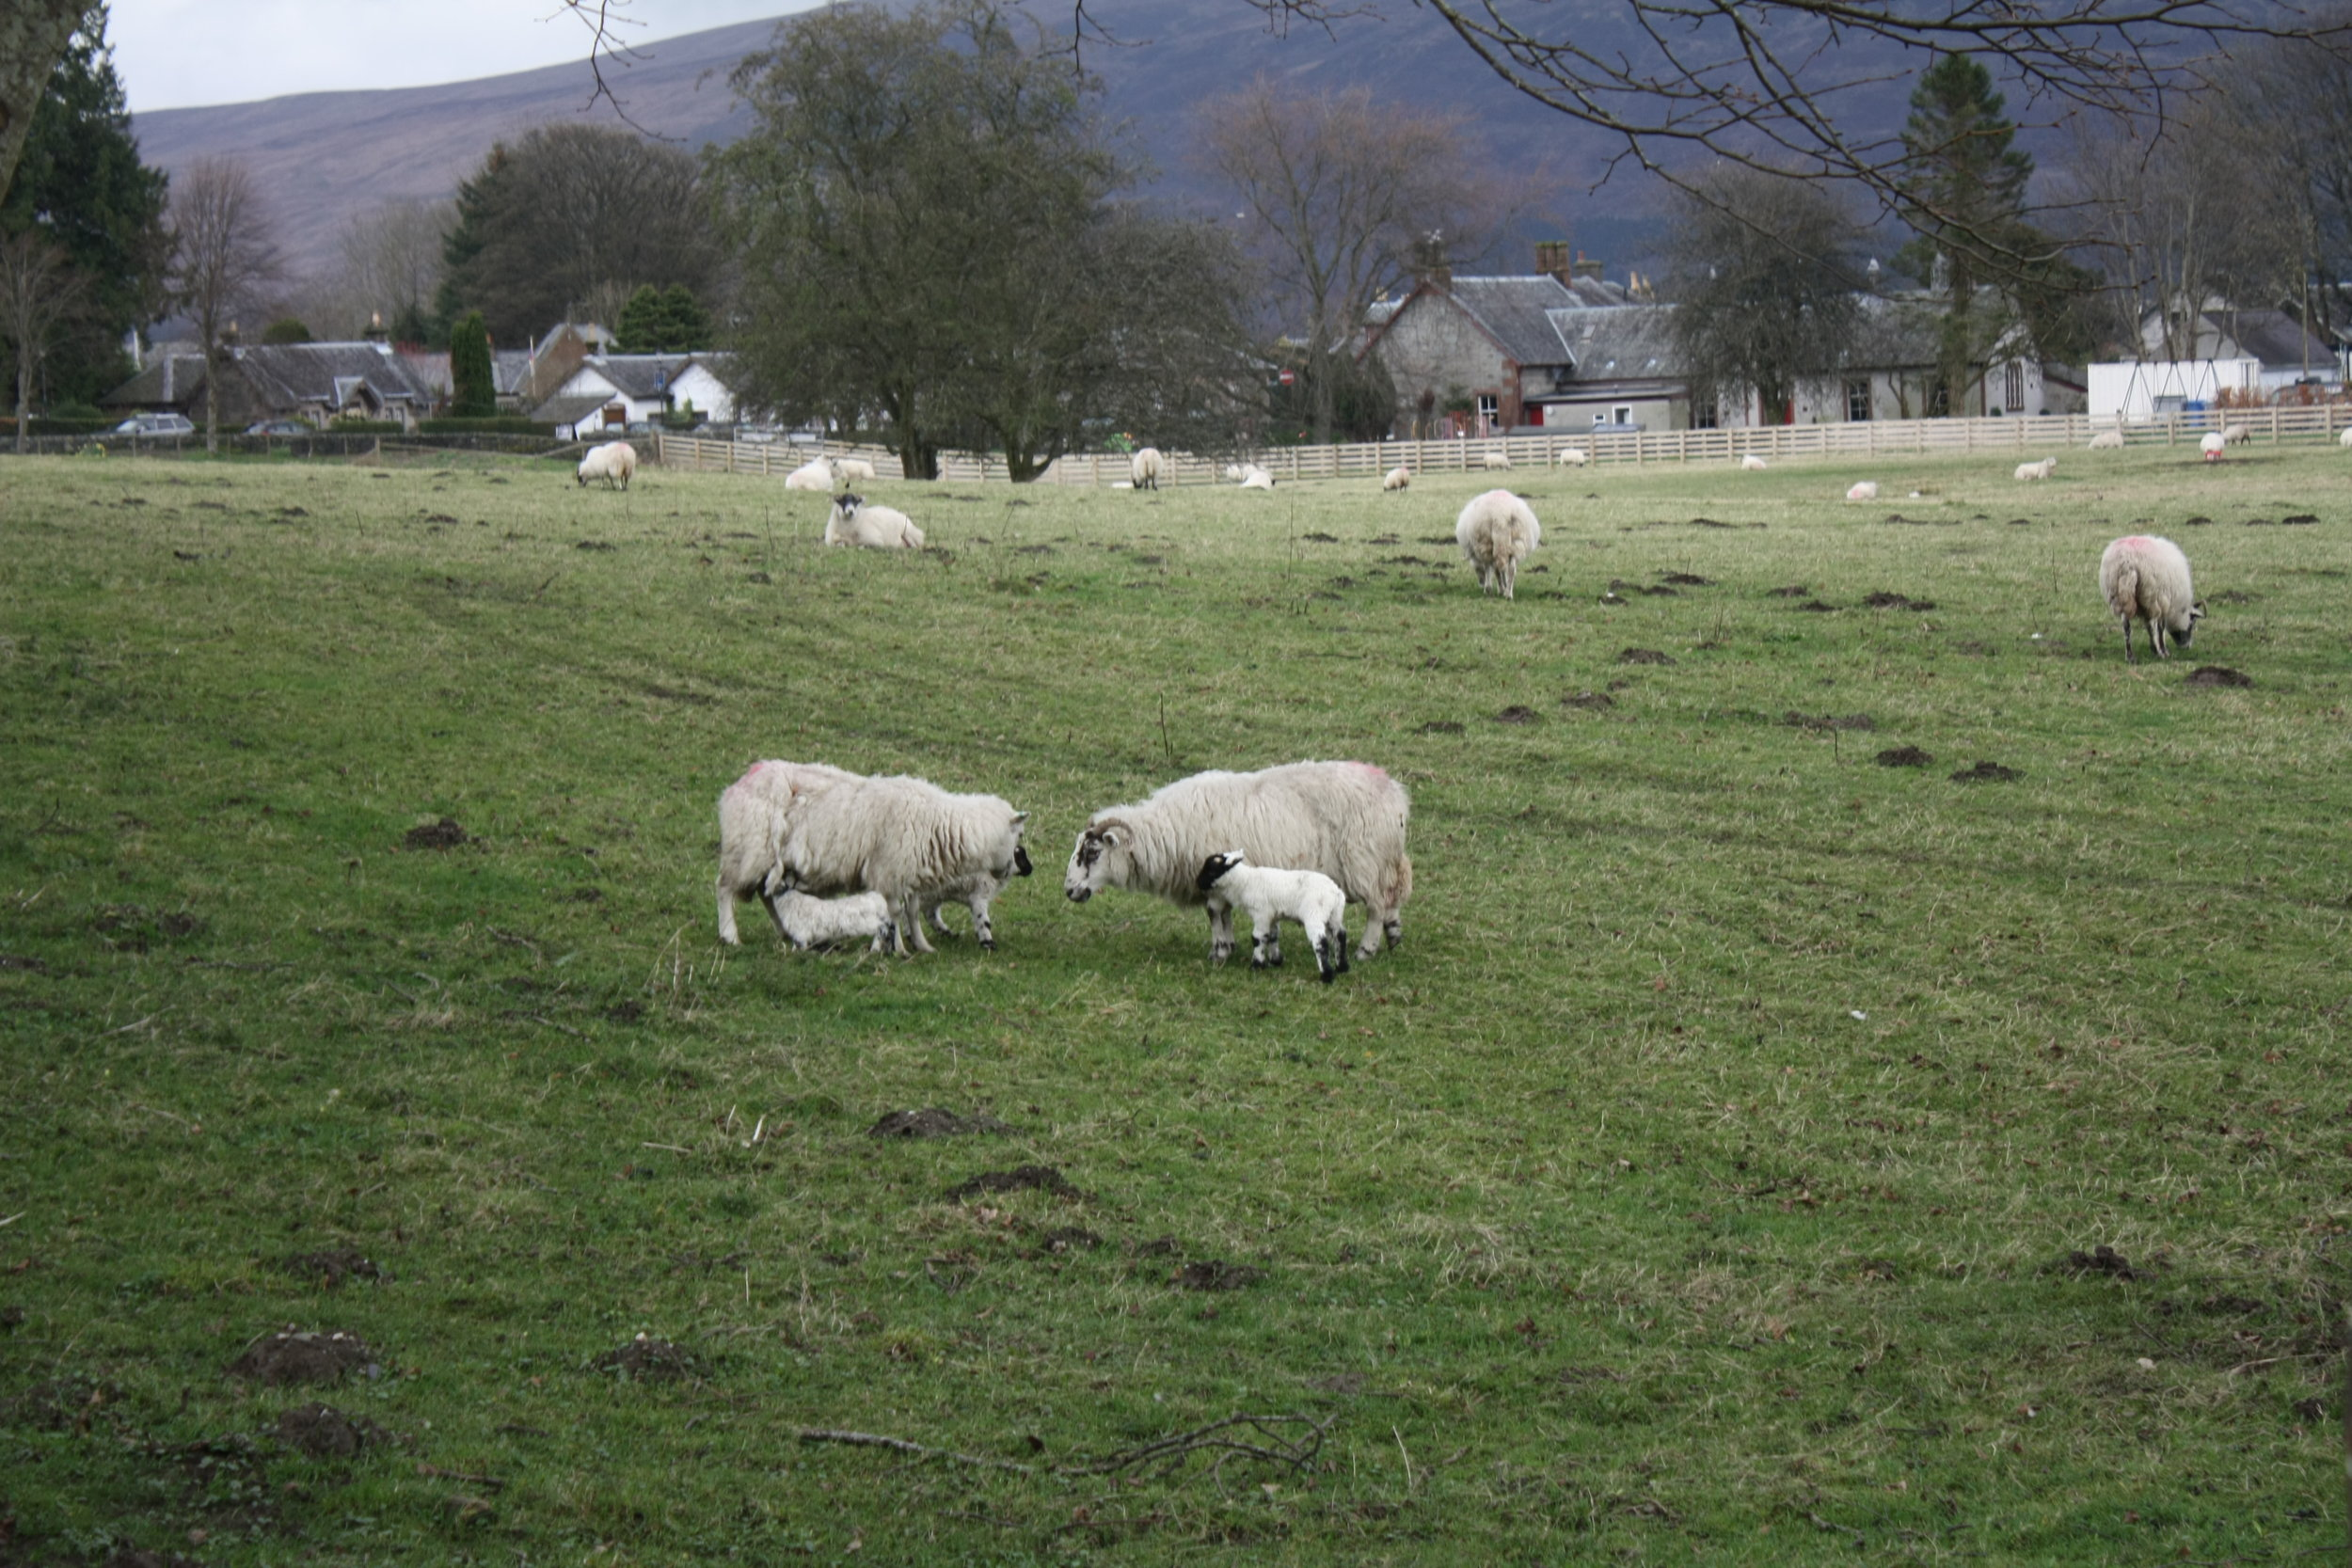 Going to see the lambs in early Spring is a sort of therapy for me